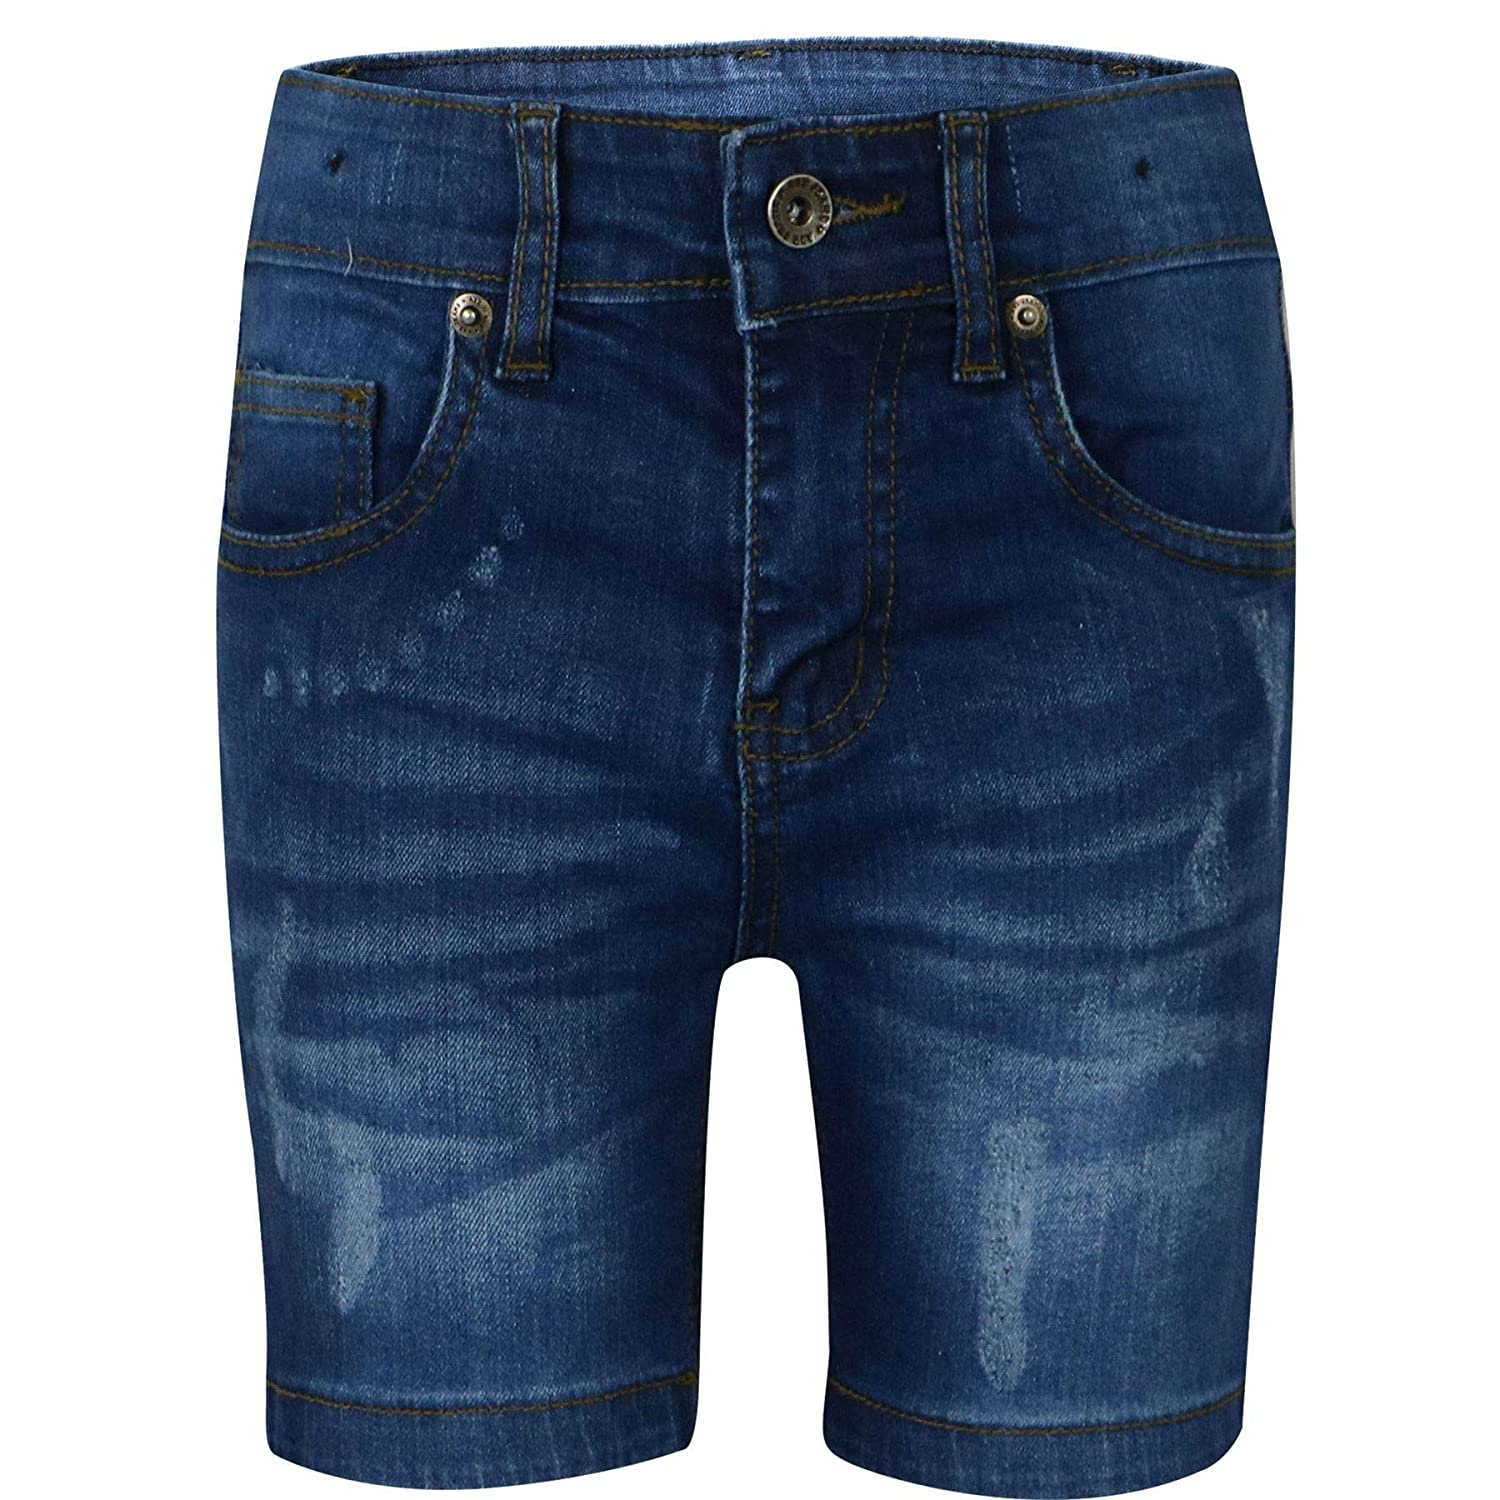 A2Z 4 Kids® Kids Boys Shorts Designer's Dark Blue Denim Ripped Chino Bermuda Jeans Shorts Casual Knee Length Half Pant New Age 5 6 7 8 9 10 11 12 13 Years